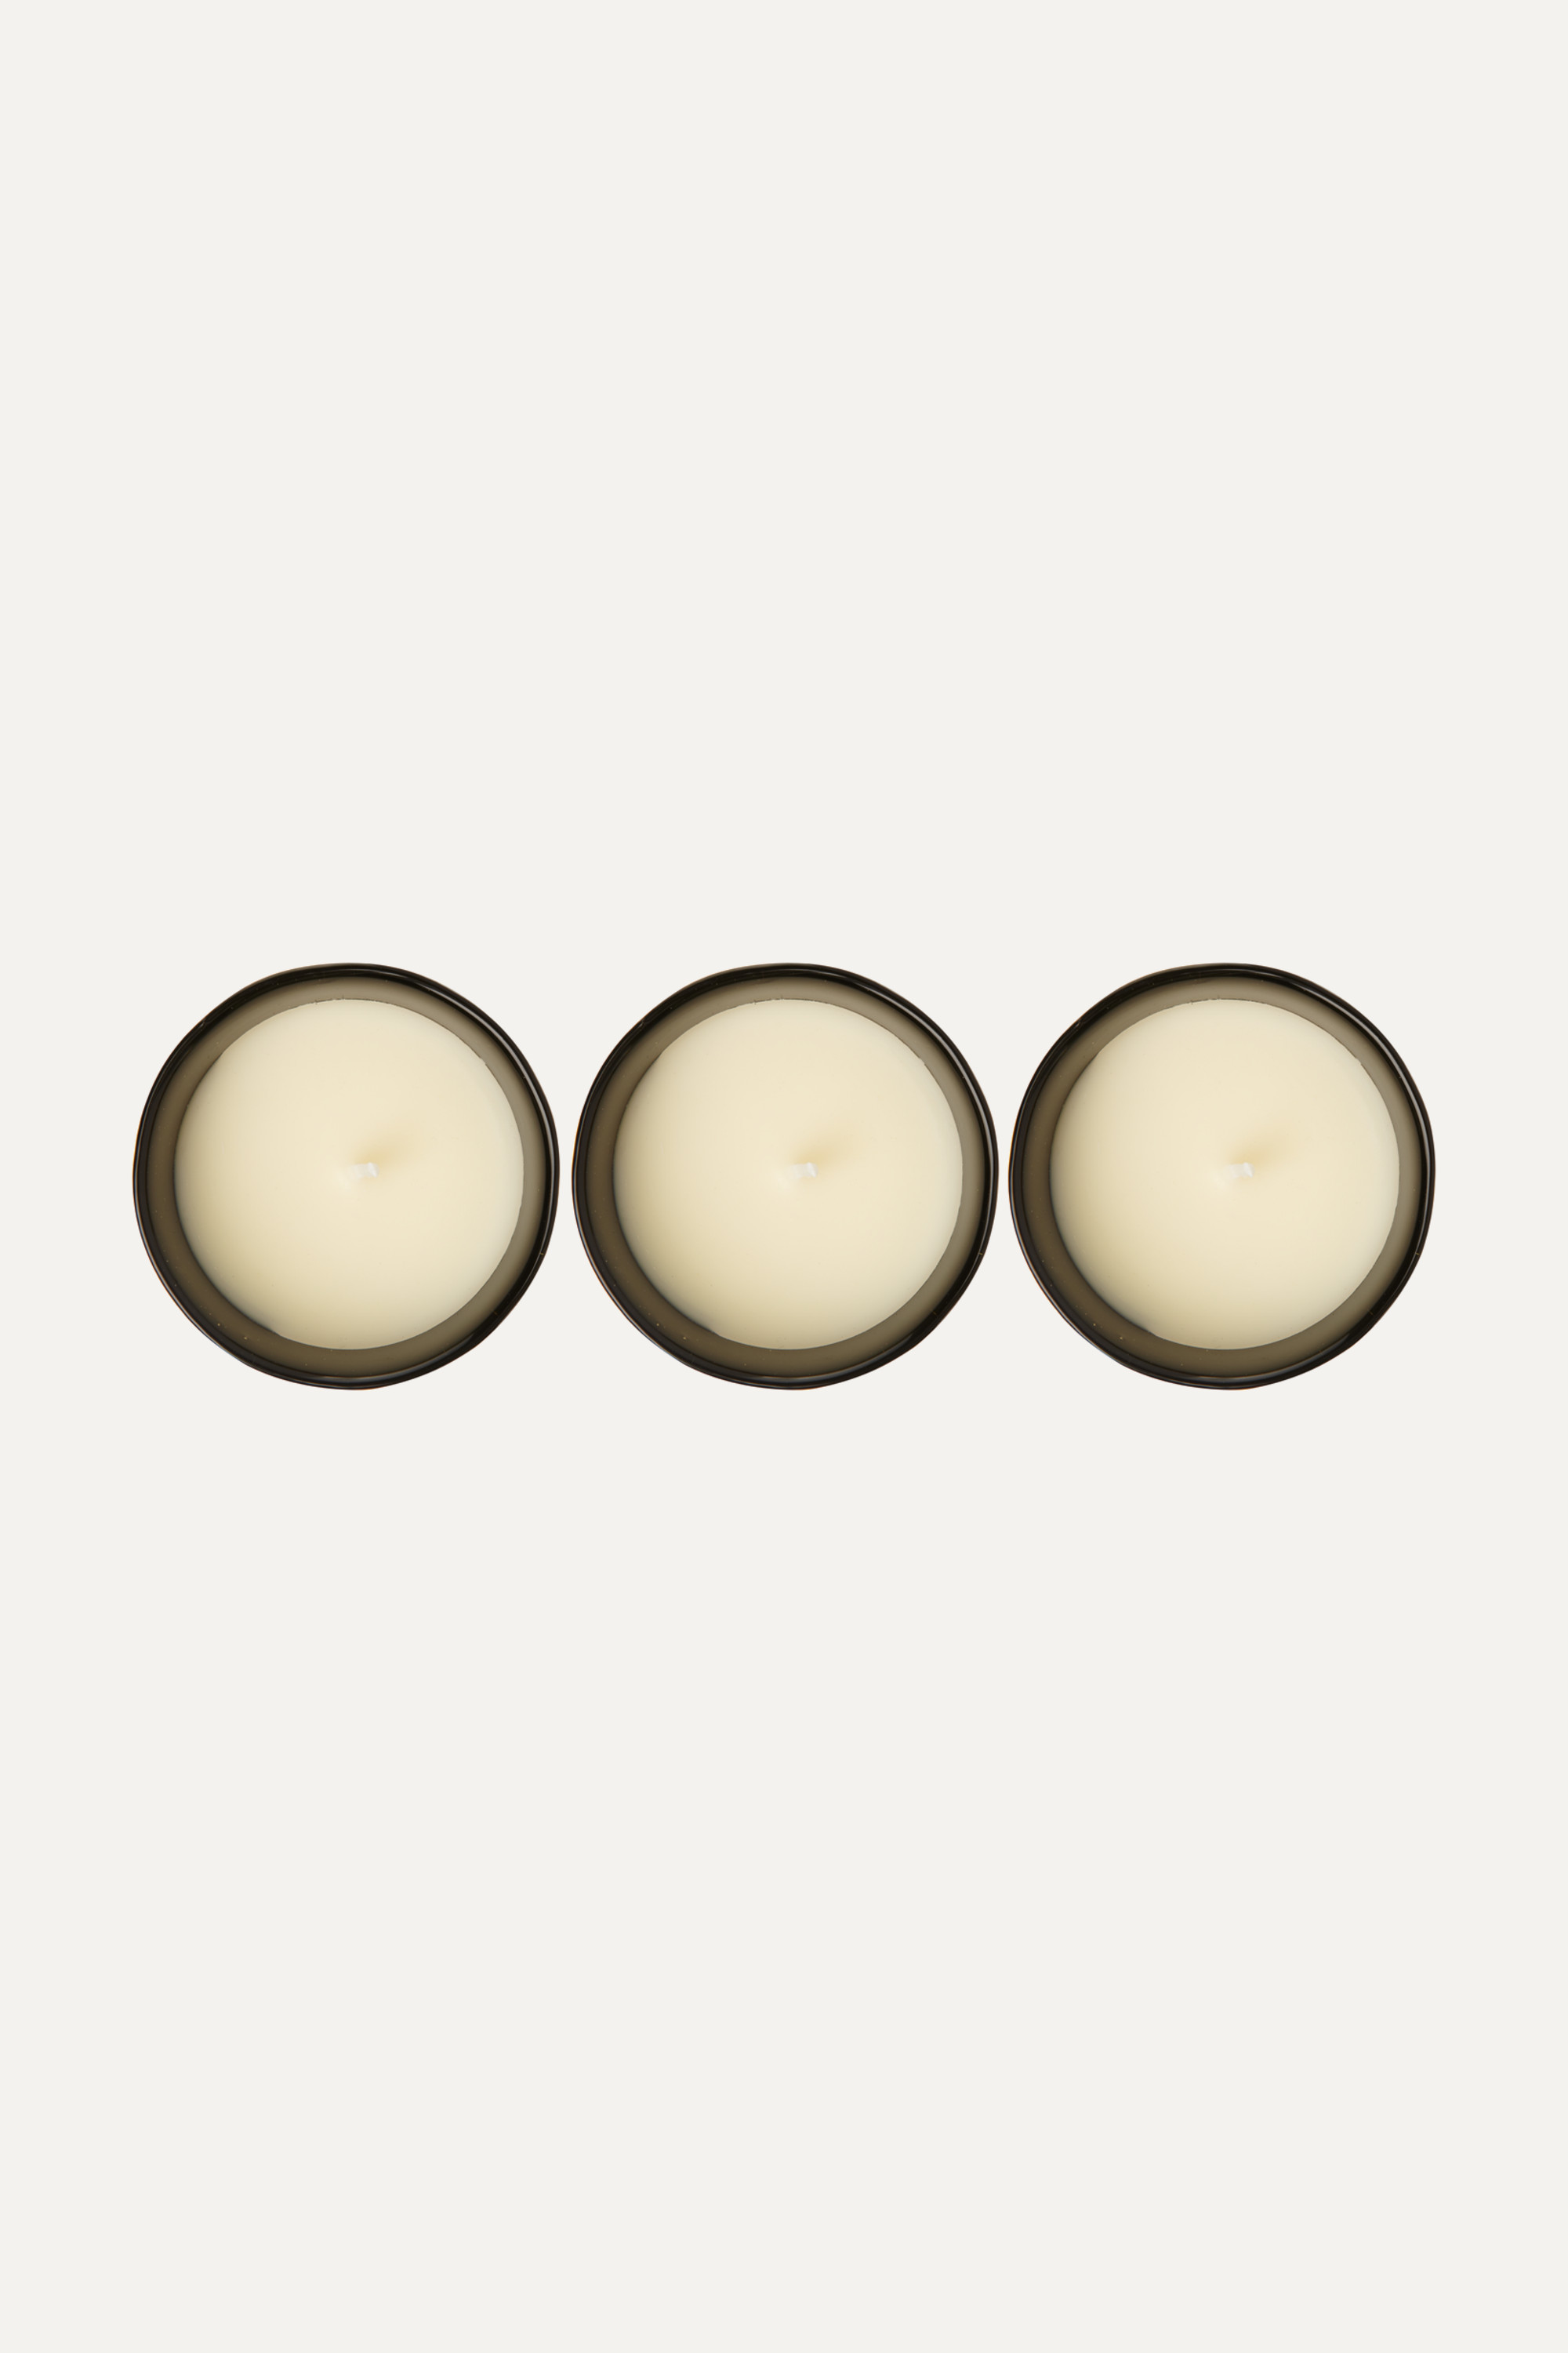 Cire Trudon Odeurs Royales set of three scented candles, 3 x 100g